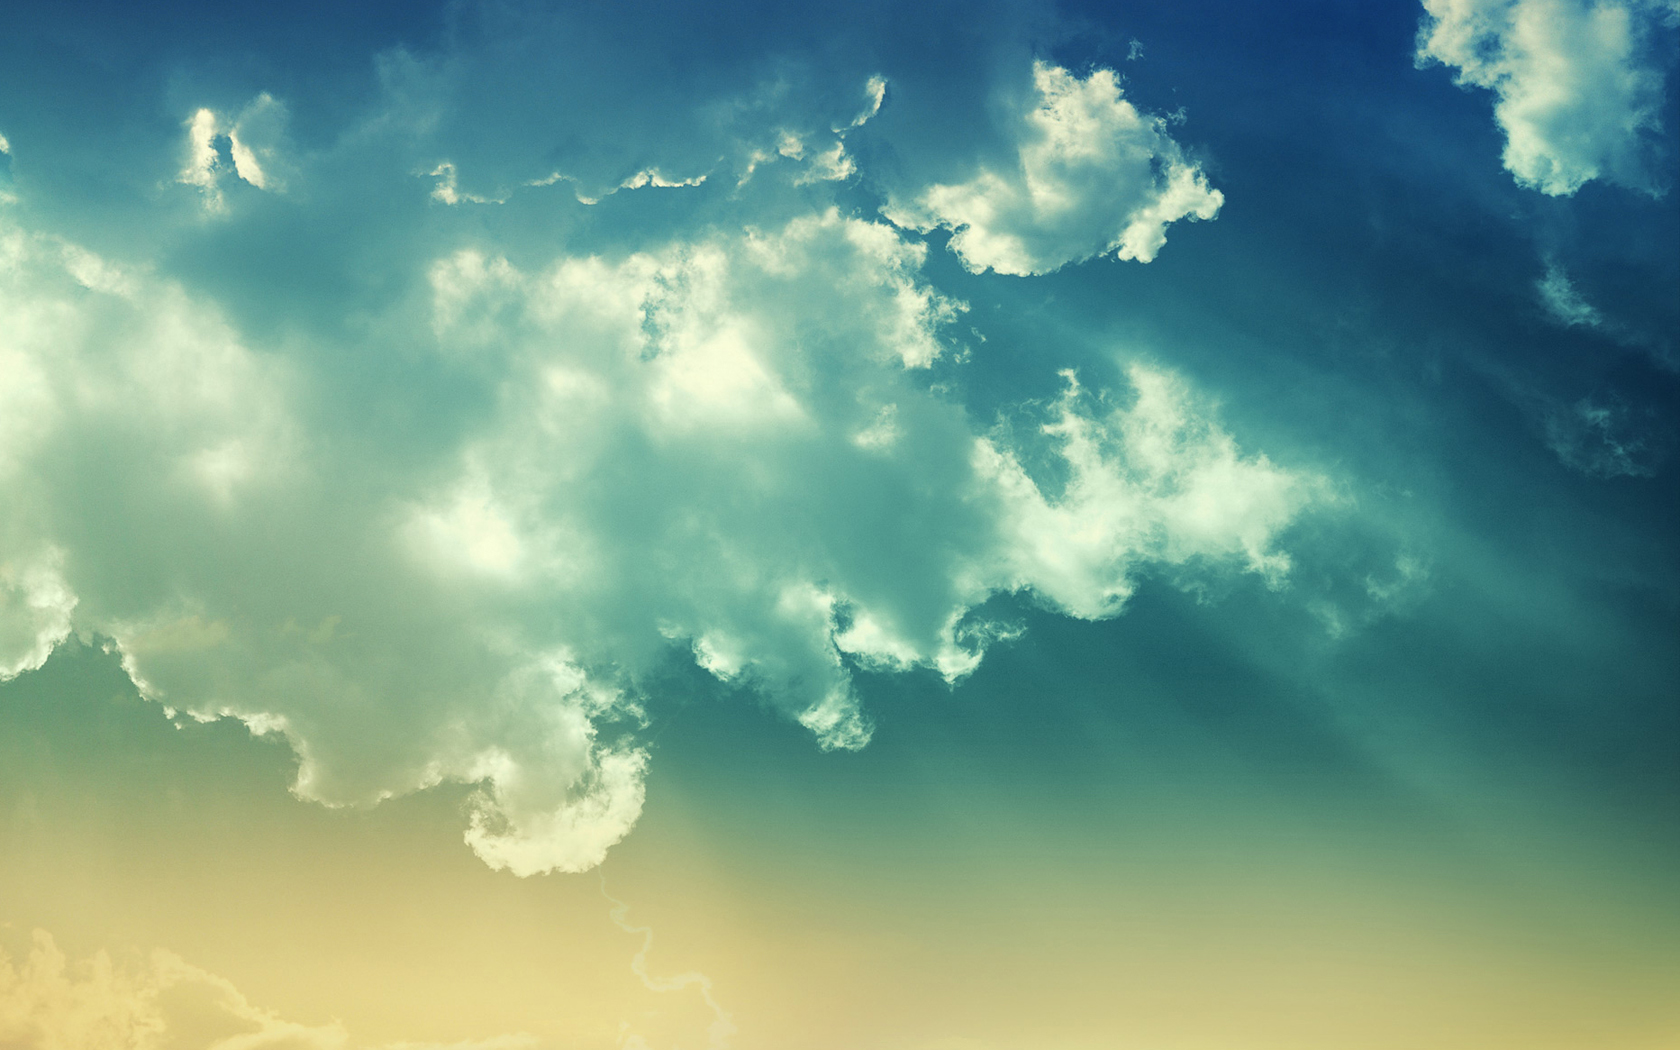 Image blue beige clouds wallpaper 1680x1050jpg   Simplest Image 1680x1050